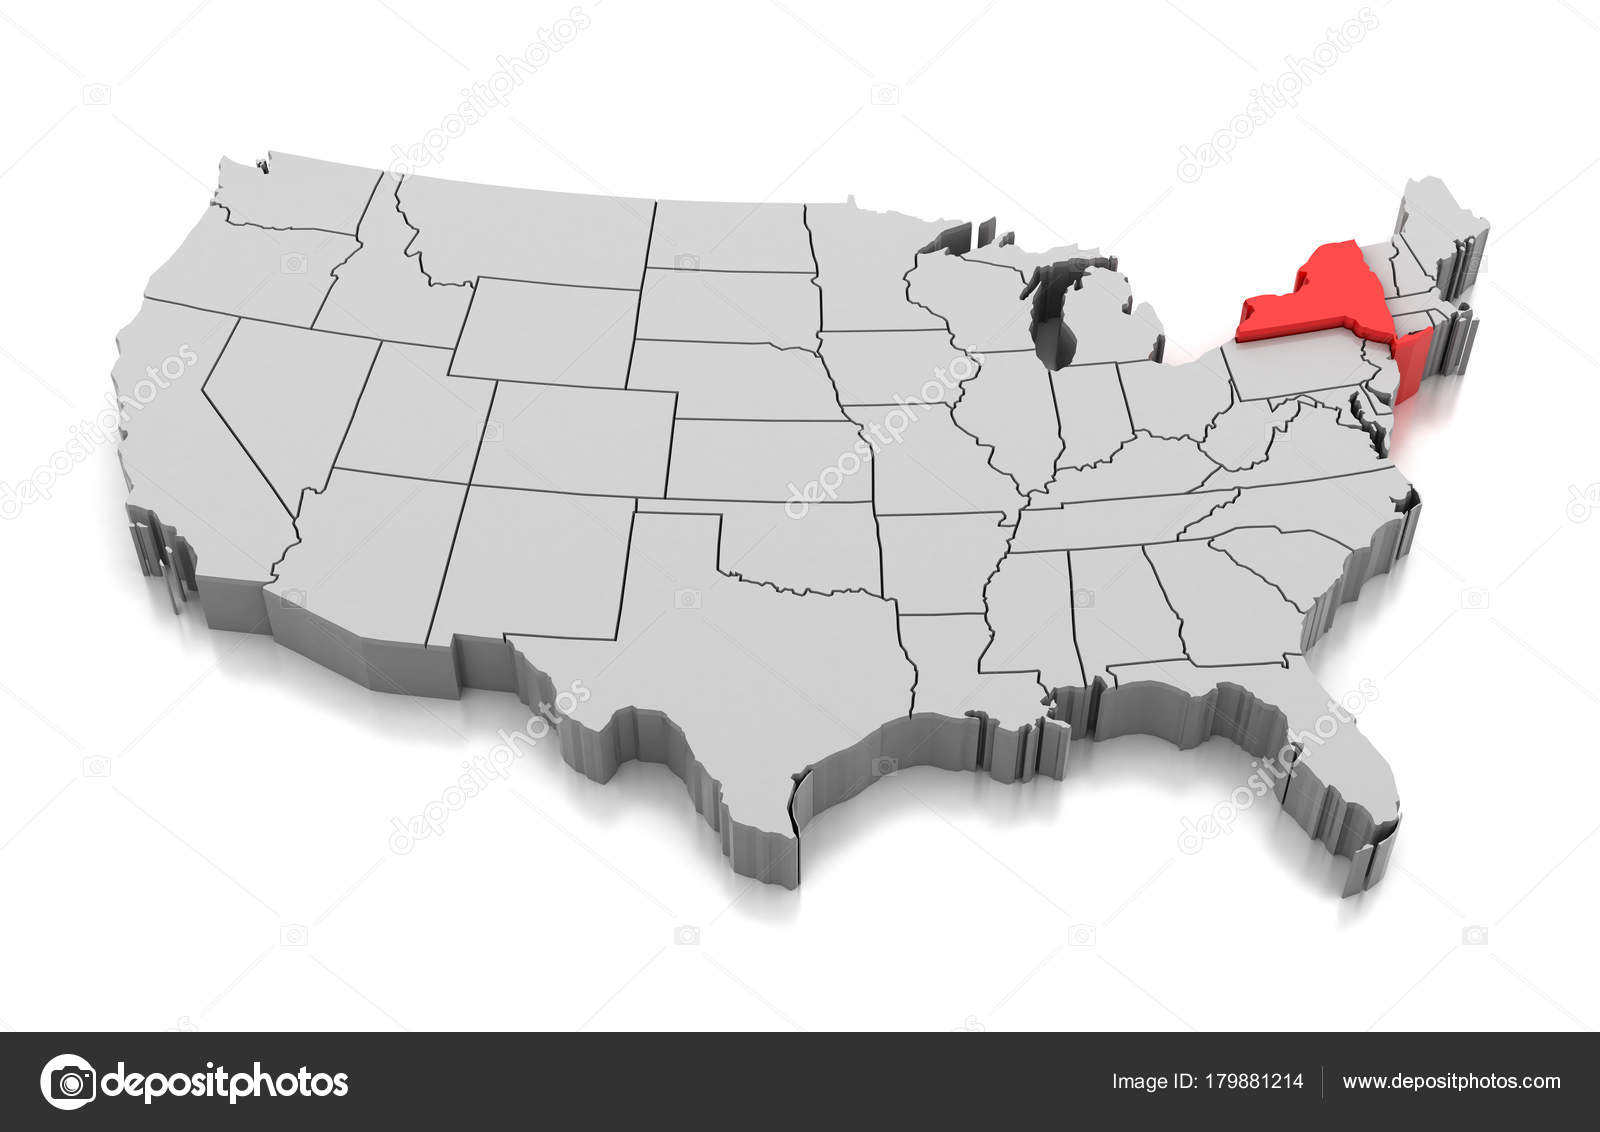 Map Of New York State Usa.Map Of New York State Usa Stock Photo C Md3d 179881214